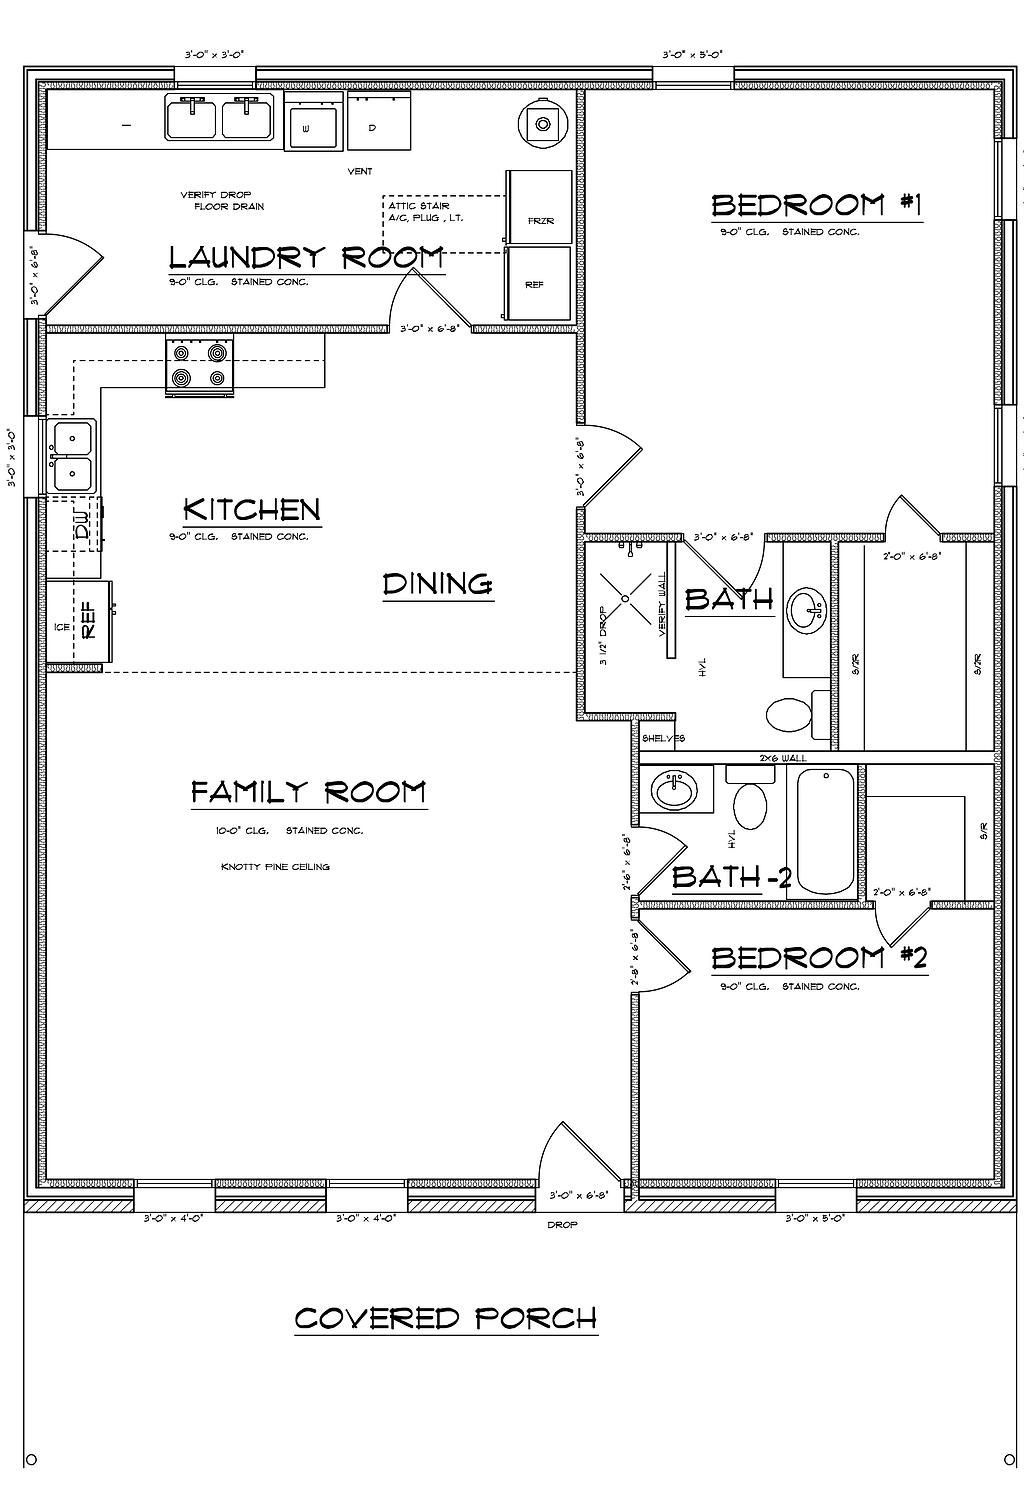 beast metal building barndominium floor plans and design ideas for you barnhomes tags texas cost sale also bedroom makeover  february at am suggestions rh pinterest